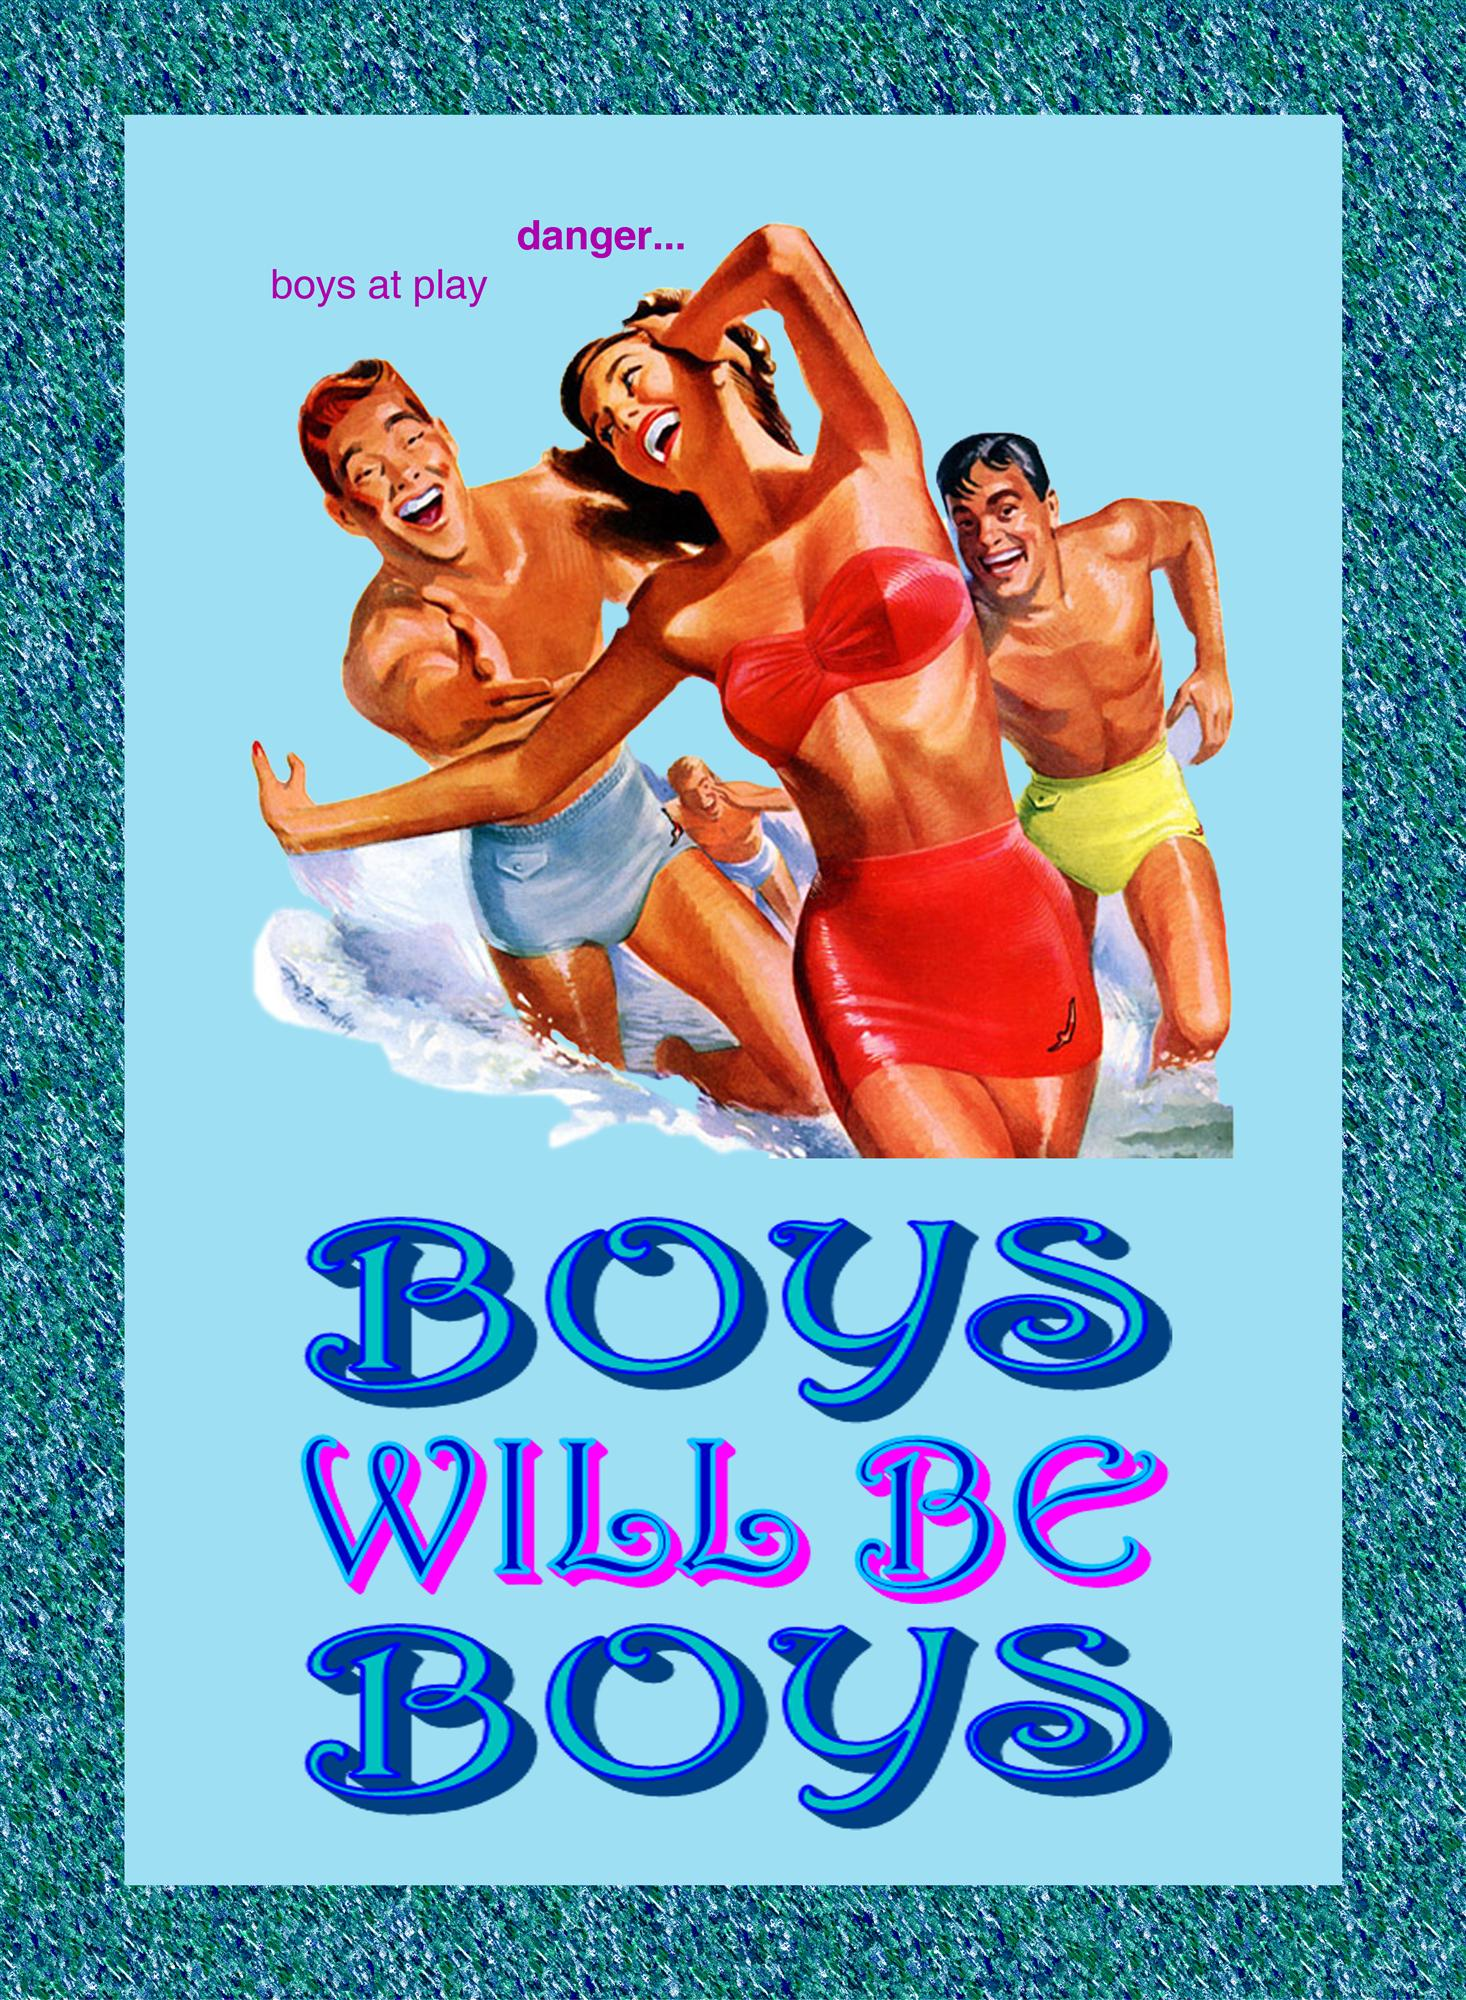 boys will be boys final 6 may 2010 (Custom).jpg